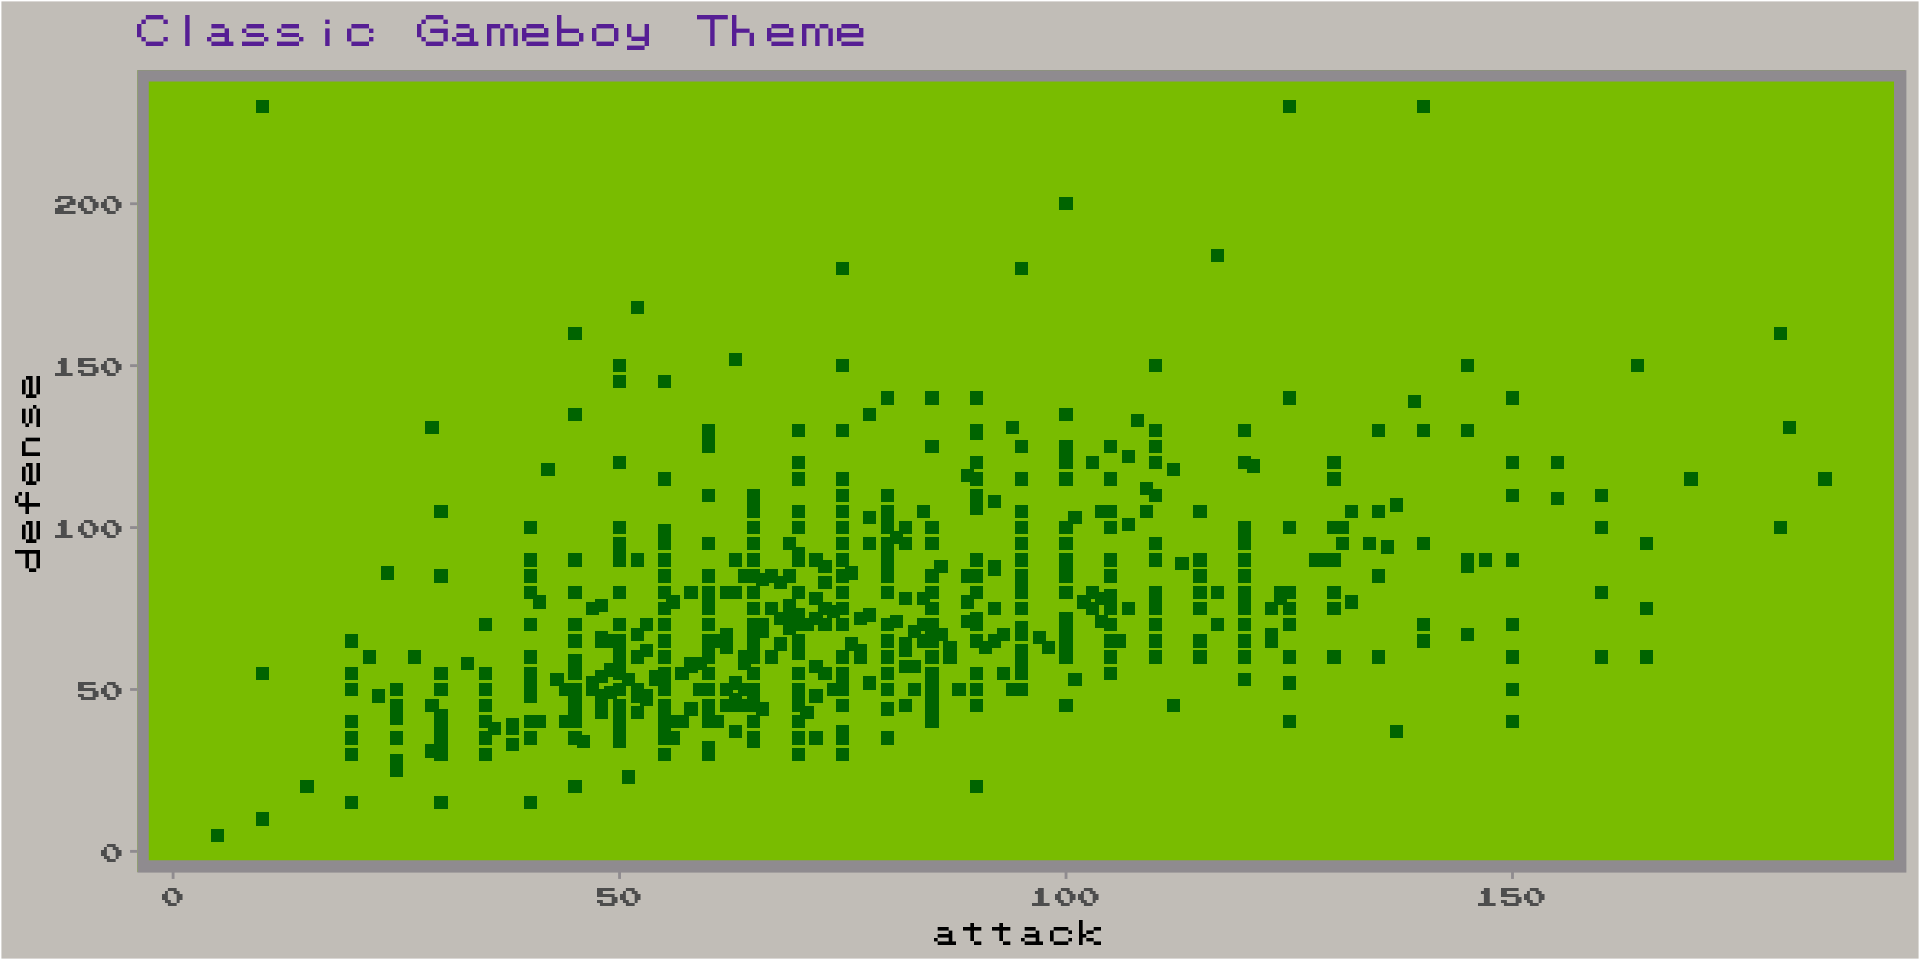 A wild R package appears! Pokemon/Gameboy inspired plots in R